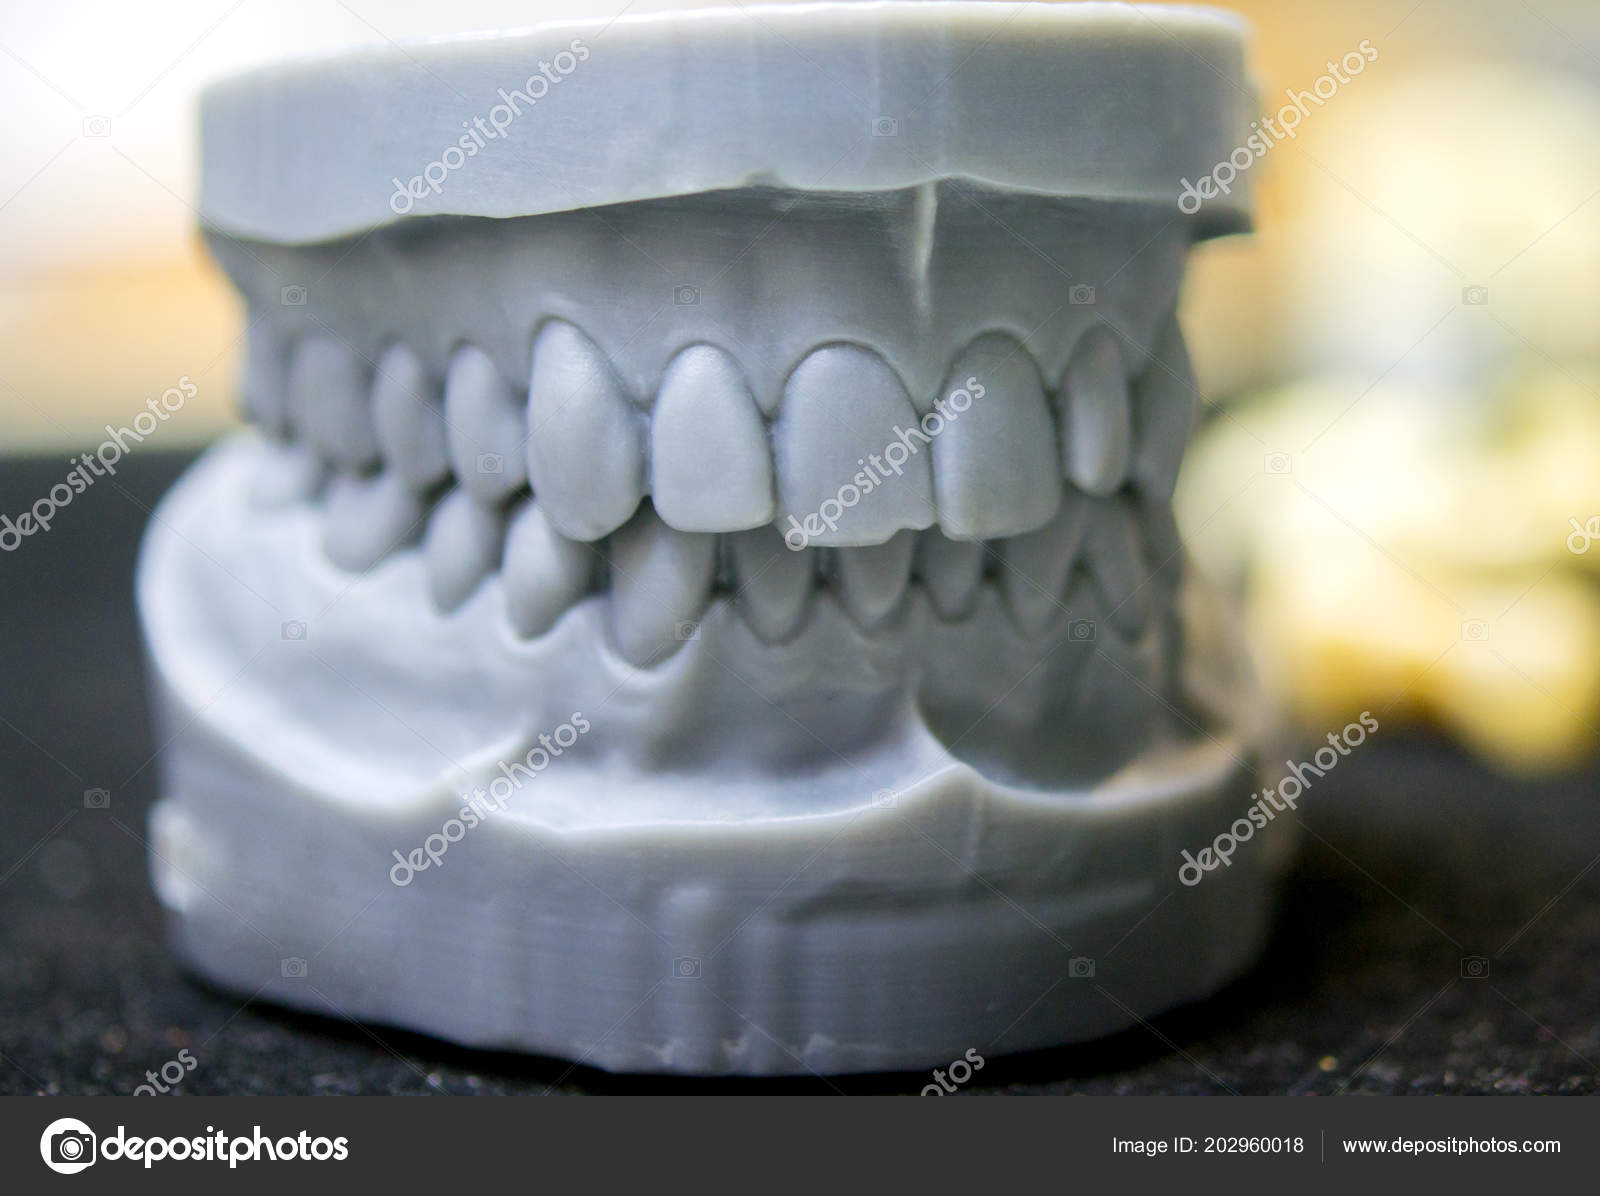 Upper and lower jaw of a man printed on a 3d printer of